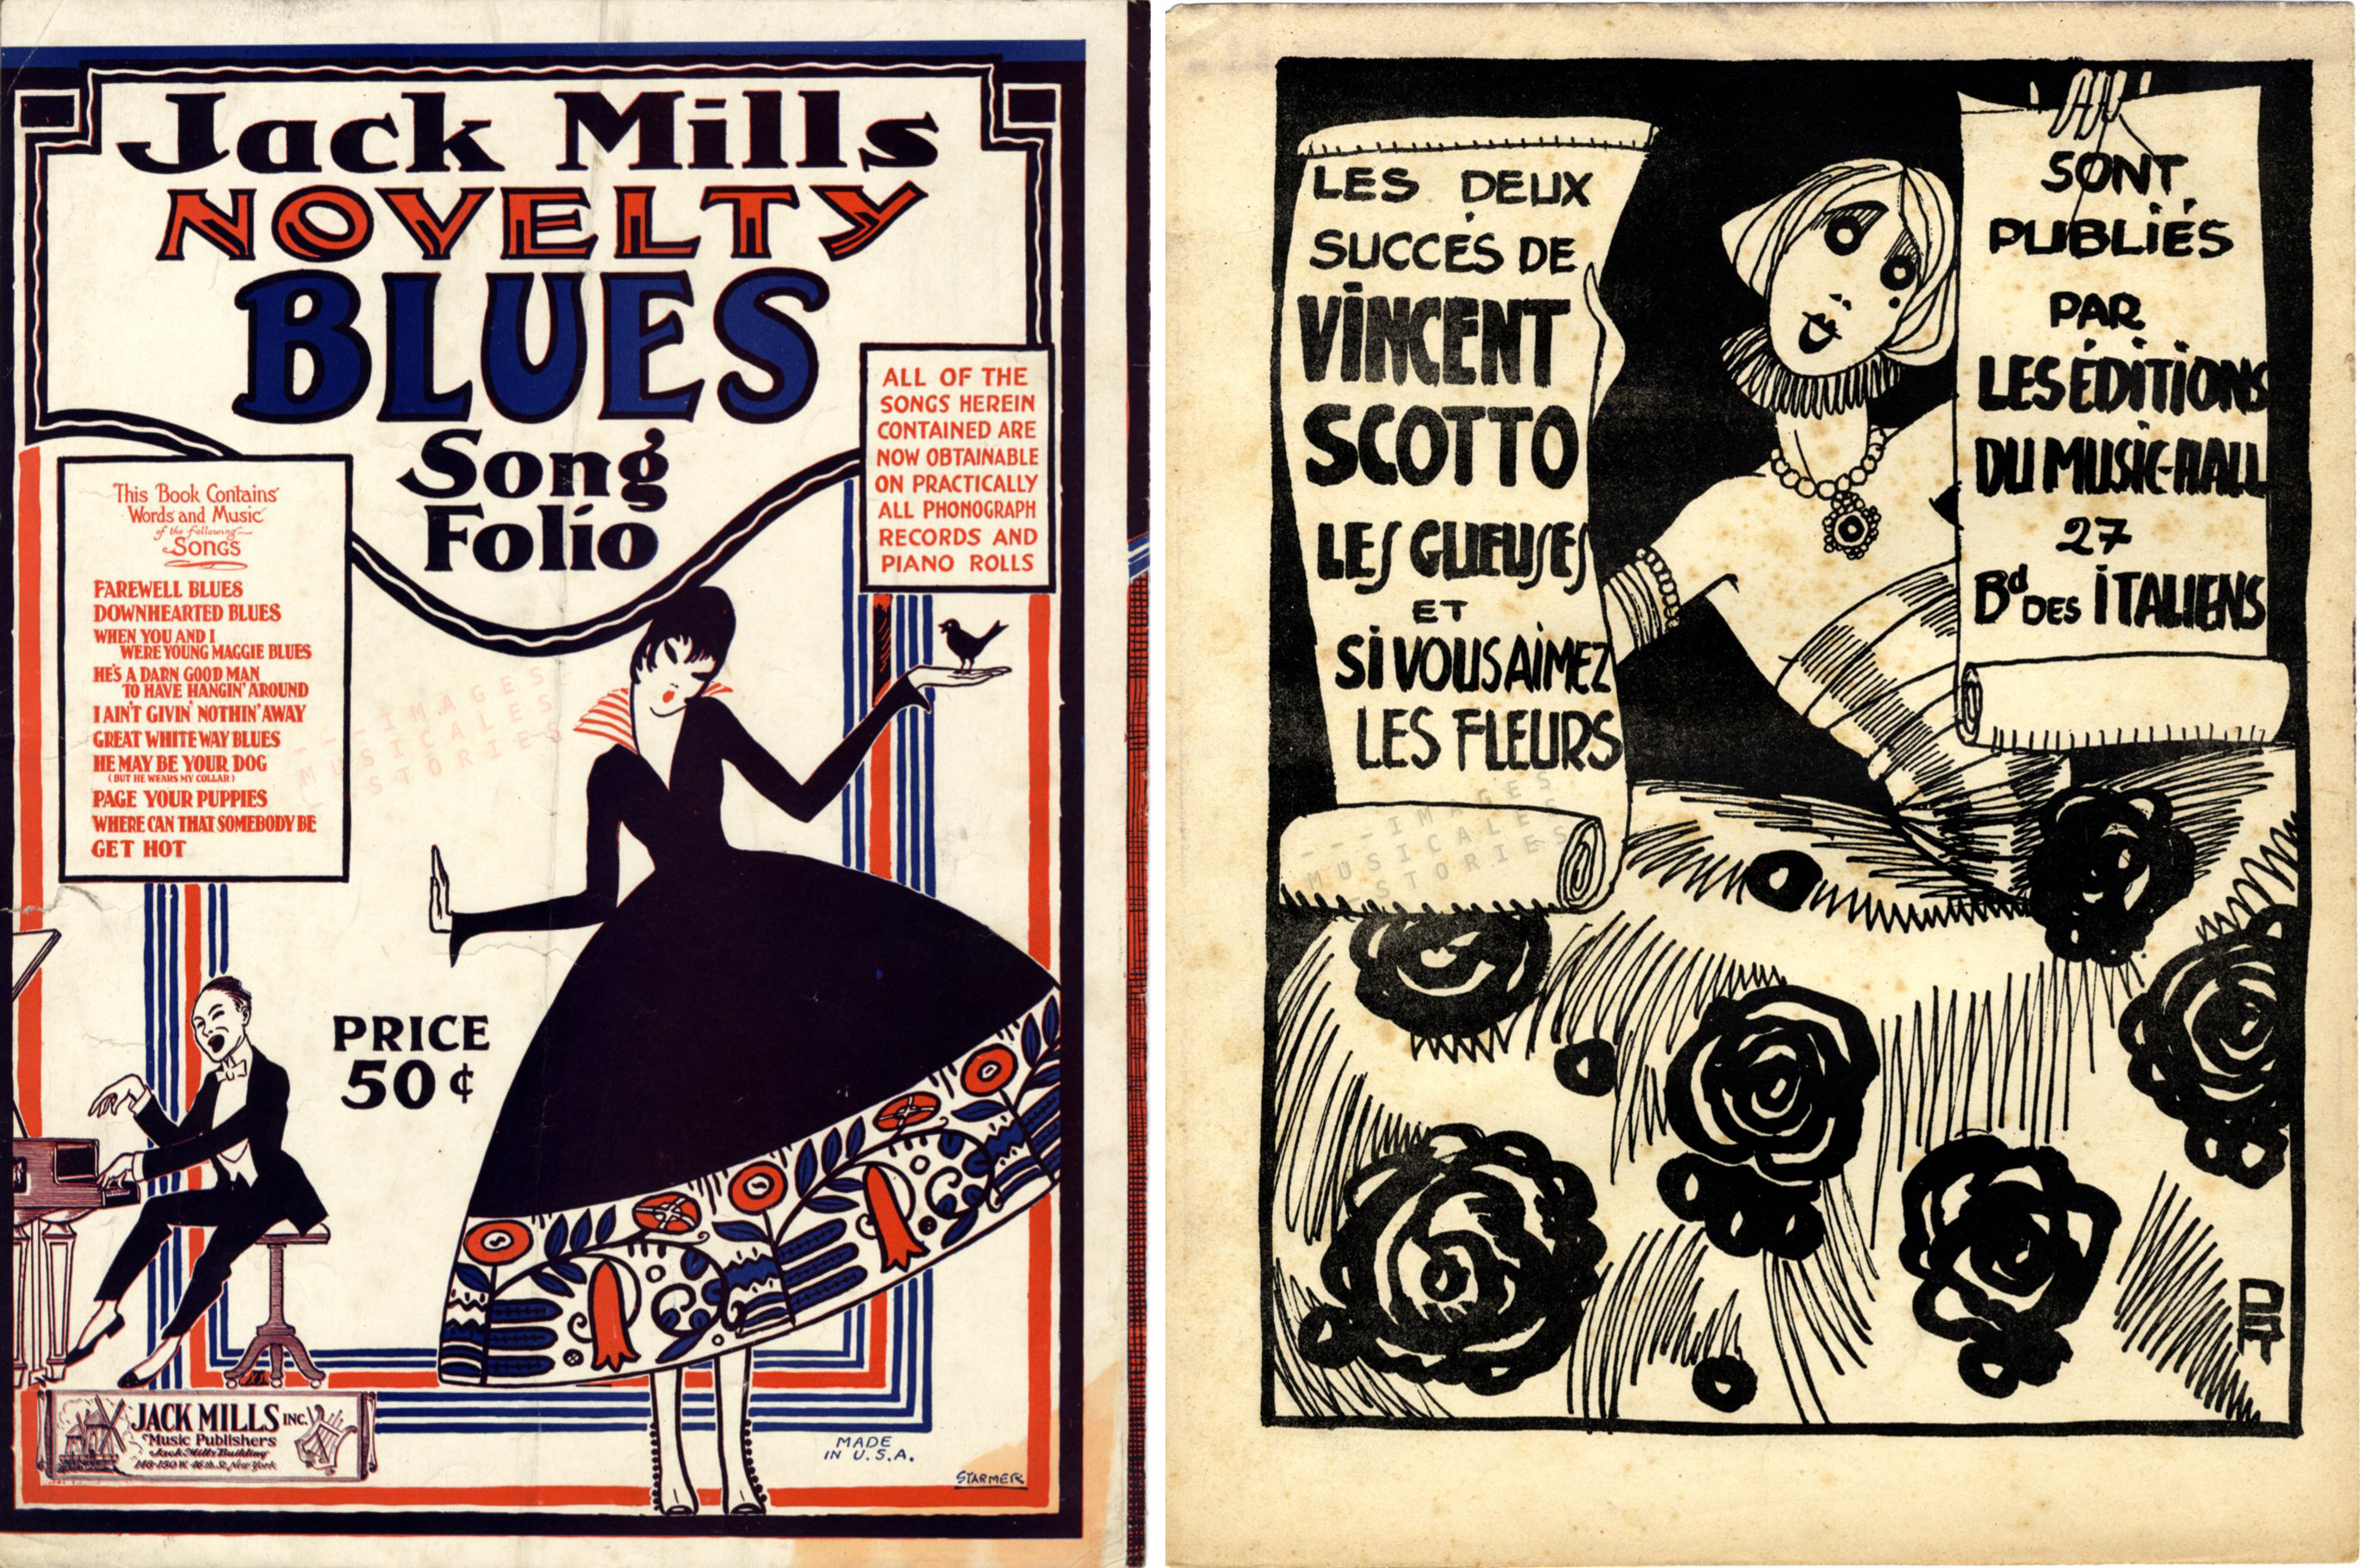 On both these back covers women in festive dress are charming us in viewing the music catalogs of publishers Jack Mills (left, illustrated by the Starmer brothers) and Les Editions du Music-Hall (right, illustrated by Pol Rab)